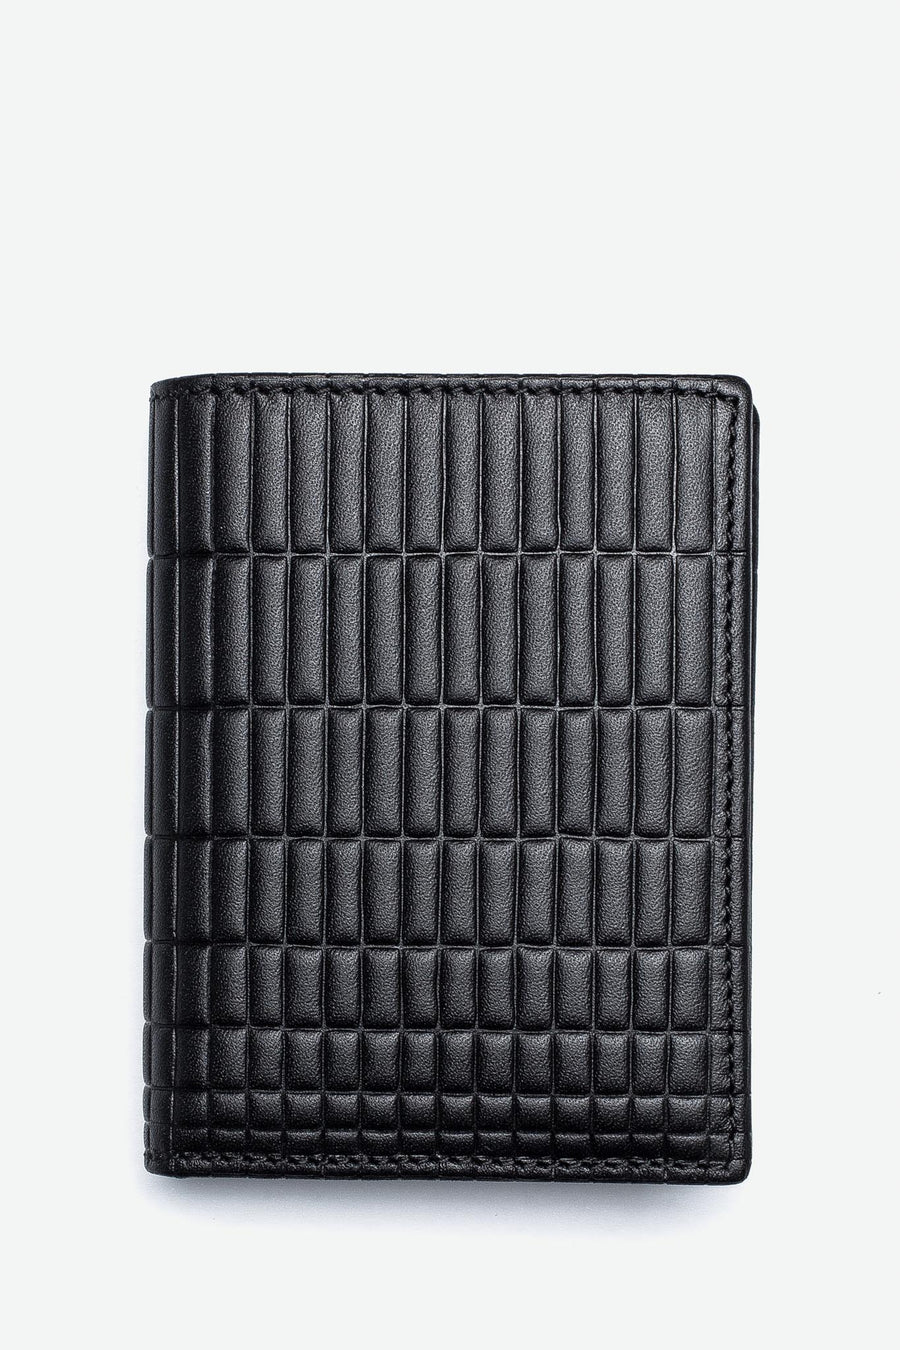 CDG Wallet Brick Bifold Wallet Black